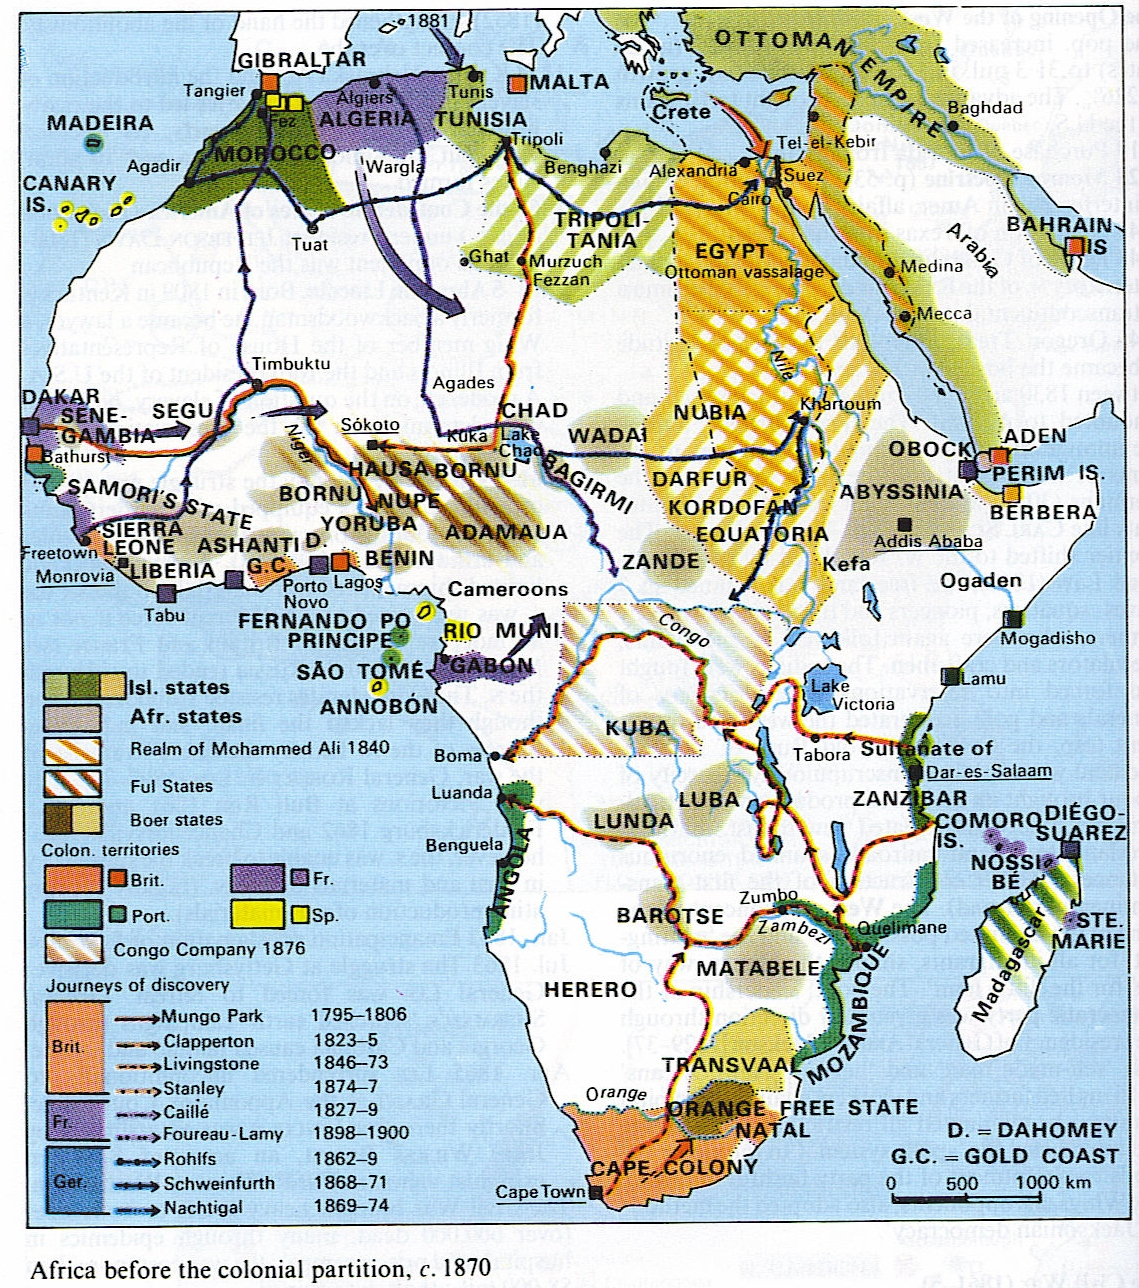 Africa before the colonial partition c. 1870